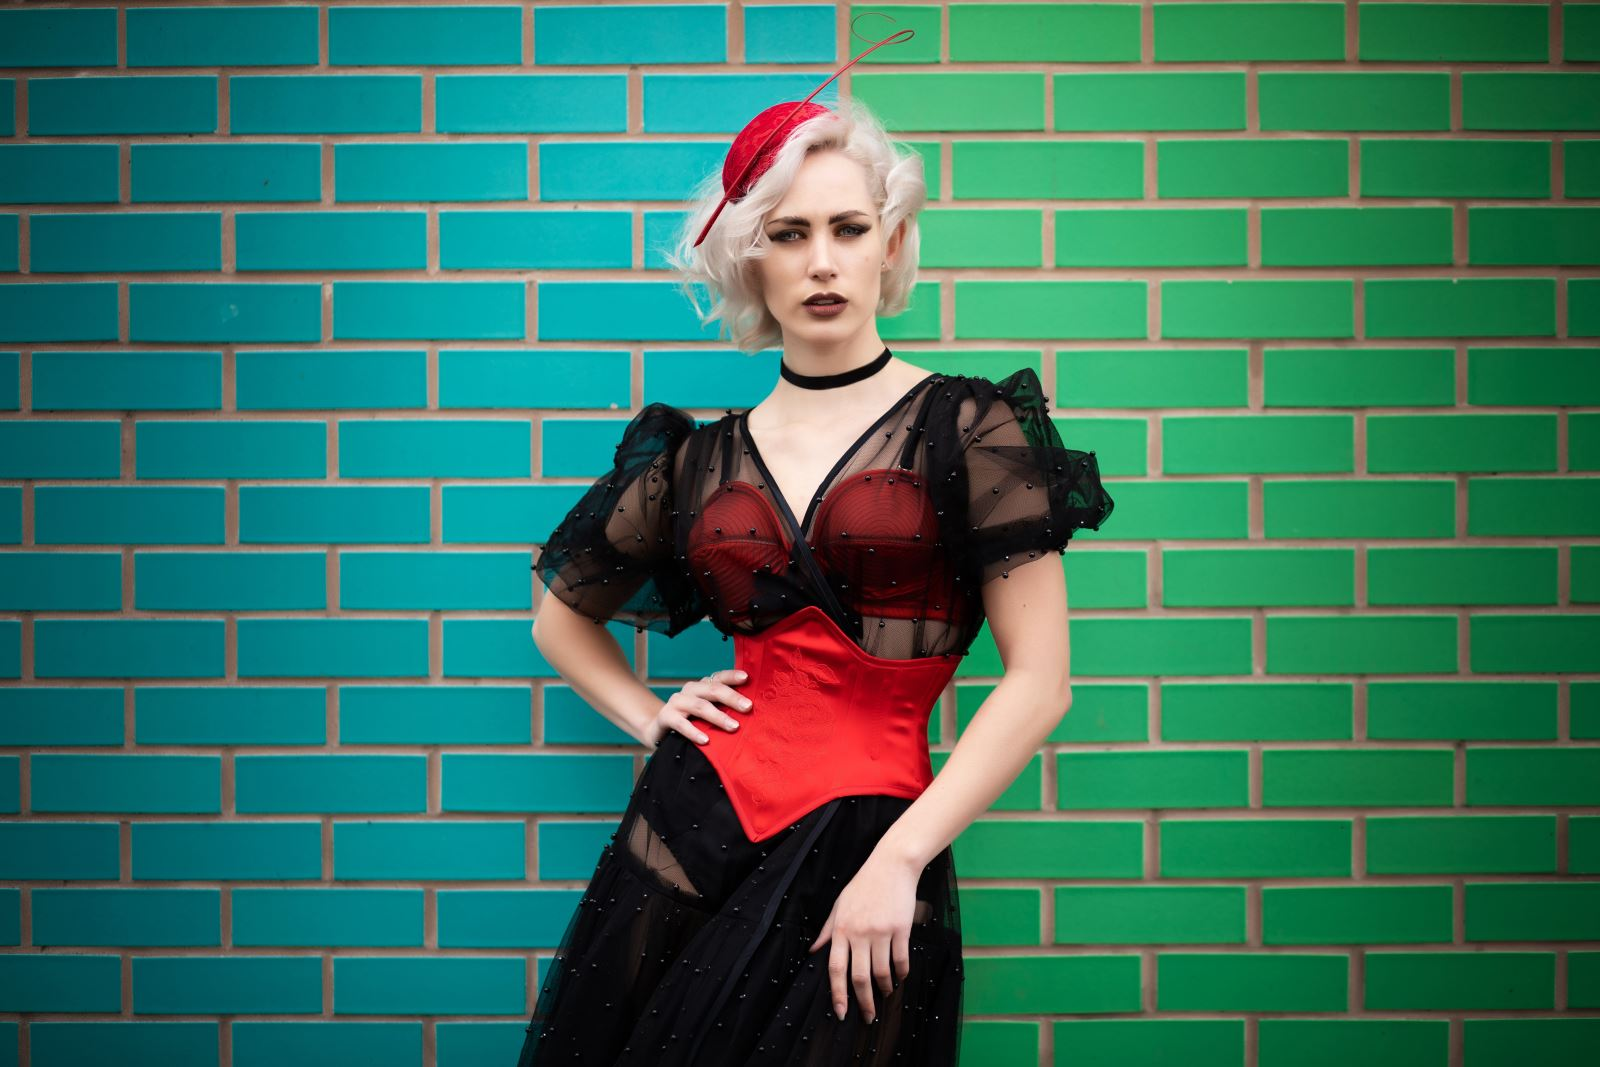 819ba7a275 The city s own corsetière Kiku Boutique turns 10 years old. Amidst the  lively bustle of the Northern Quarter